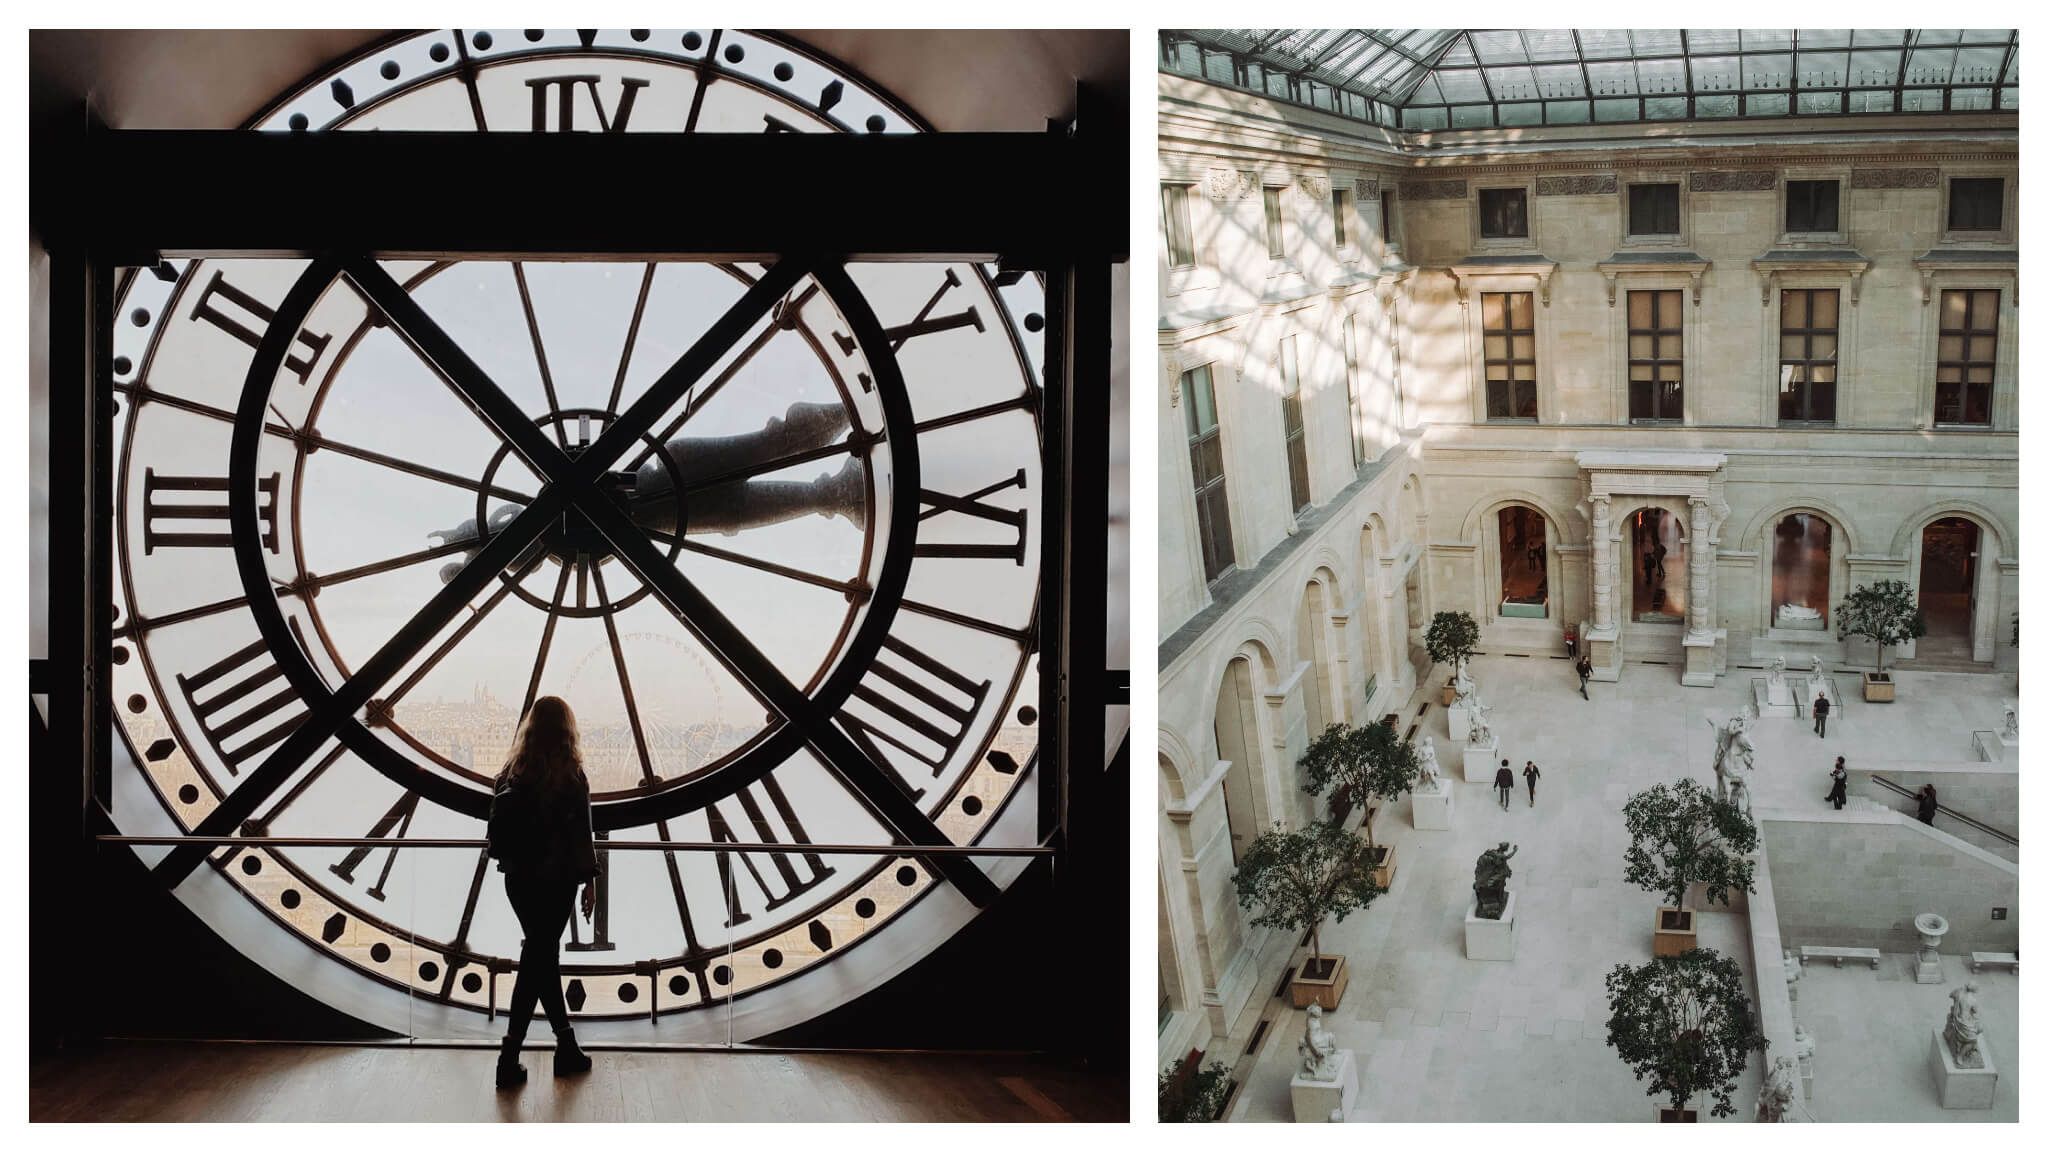 Left: A woman standing in front of a window at the D'Orsay Museum. The window is actually a large clock face, with Roman numerals and clock hands. The photo is taken from behind and she and the clock face are silhouetted. Right: the inner sculpture courtyard at the Louvre Museum. The photo is taken from up high, looking down. There are archways and windows along the walls. There are trees in pots, white sculptures, and some people. The sun shines in from the glass roof onto the wall.